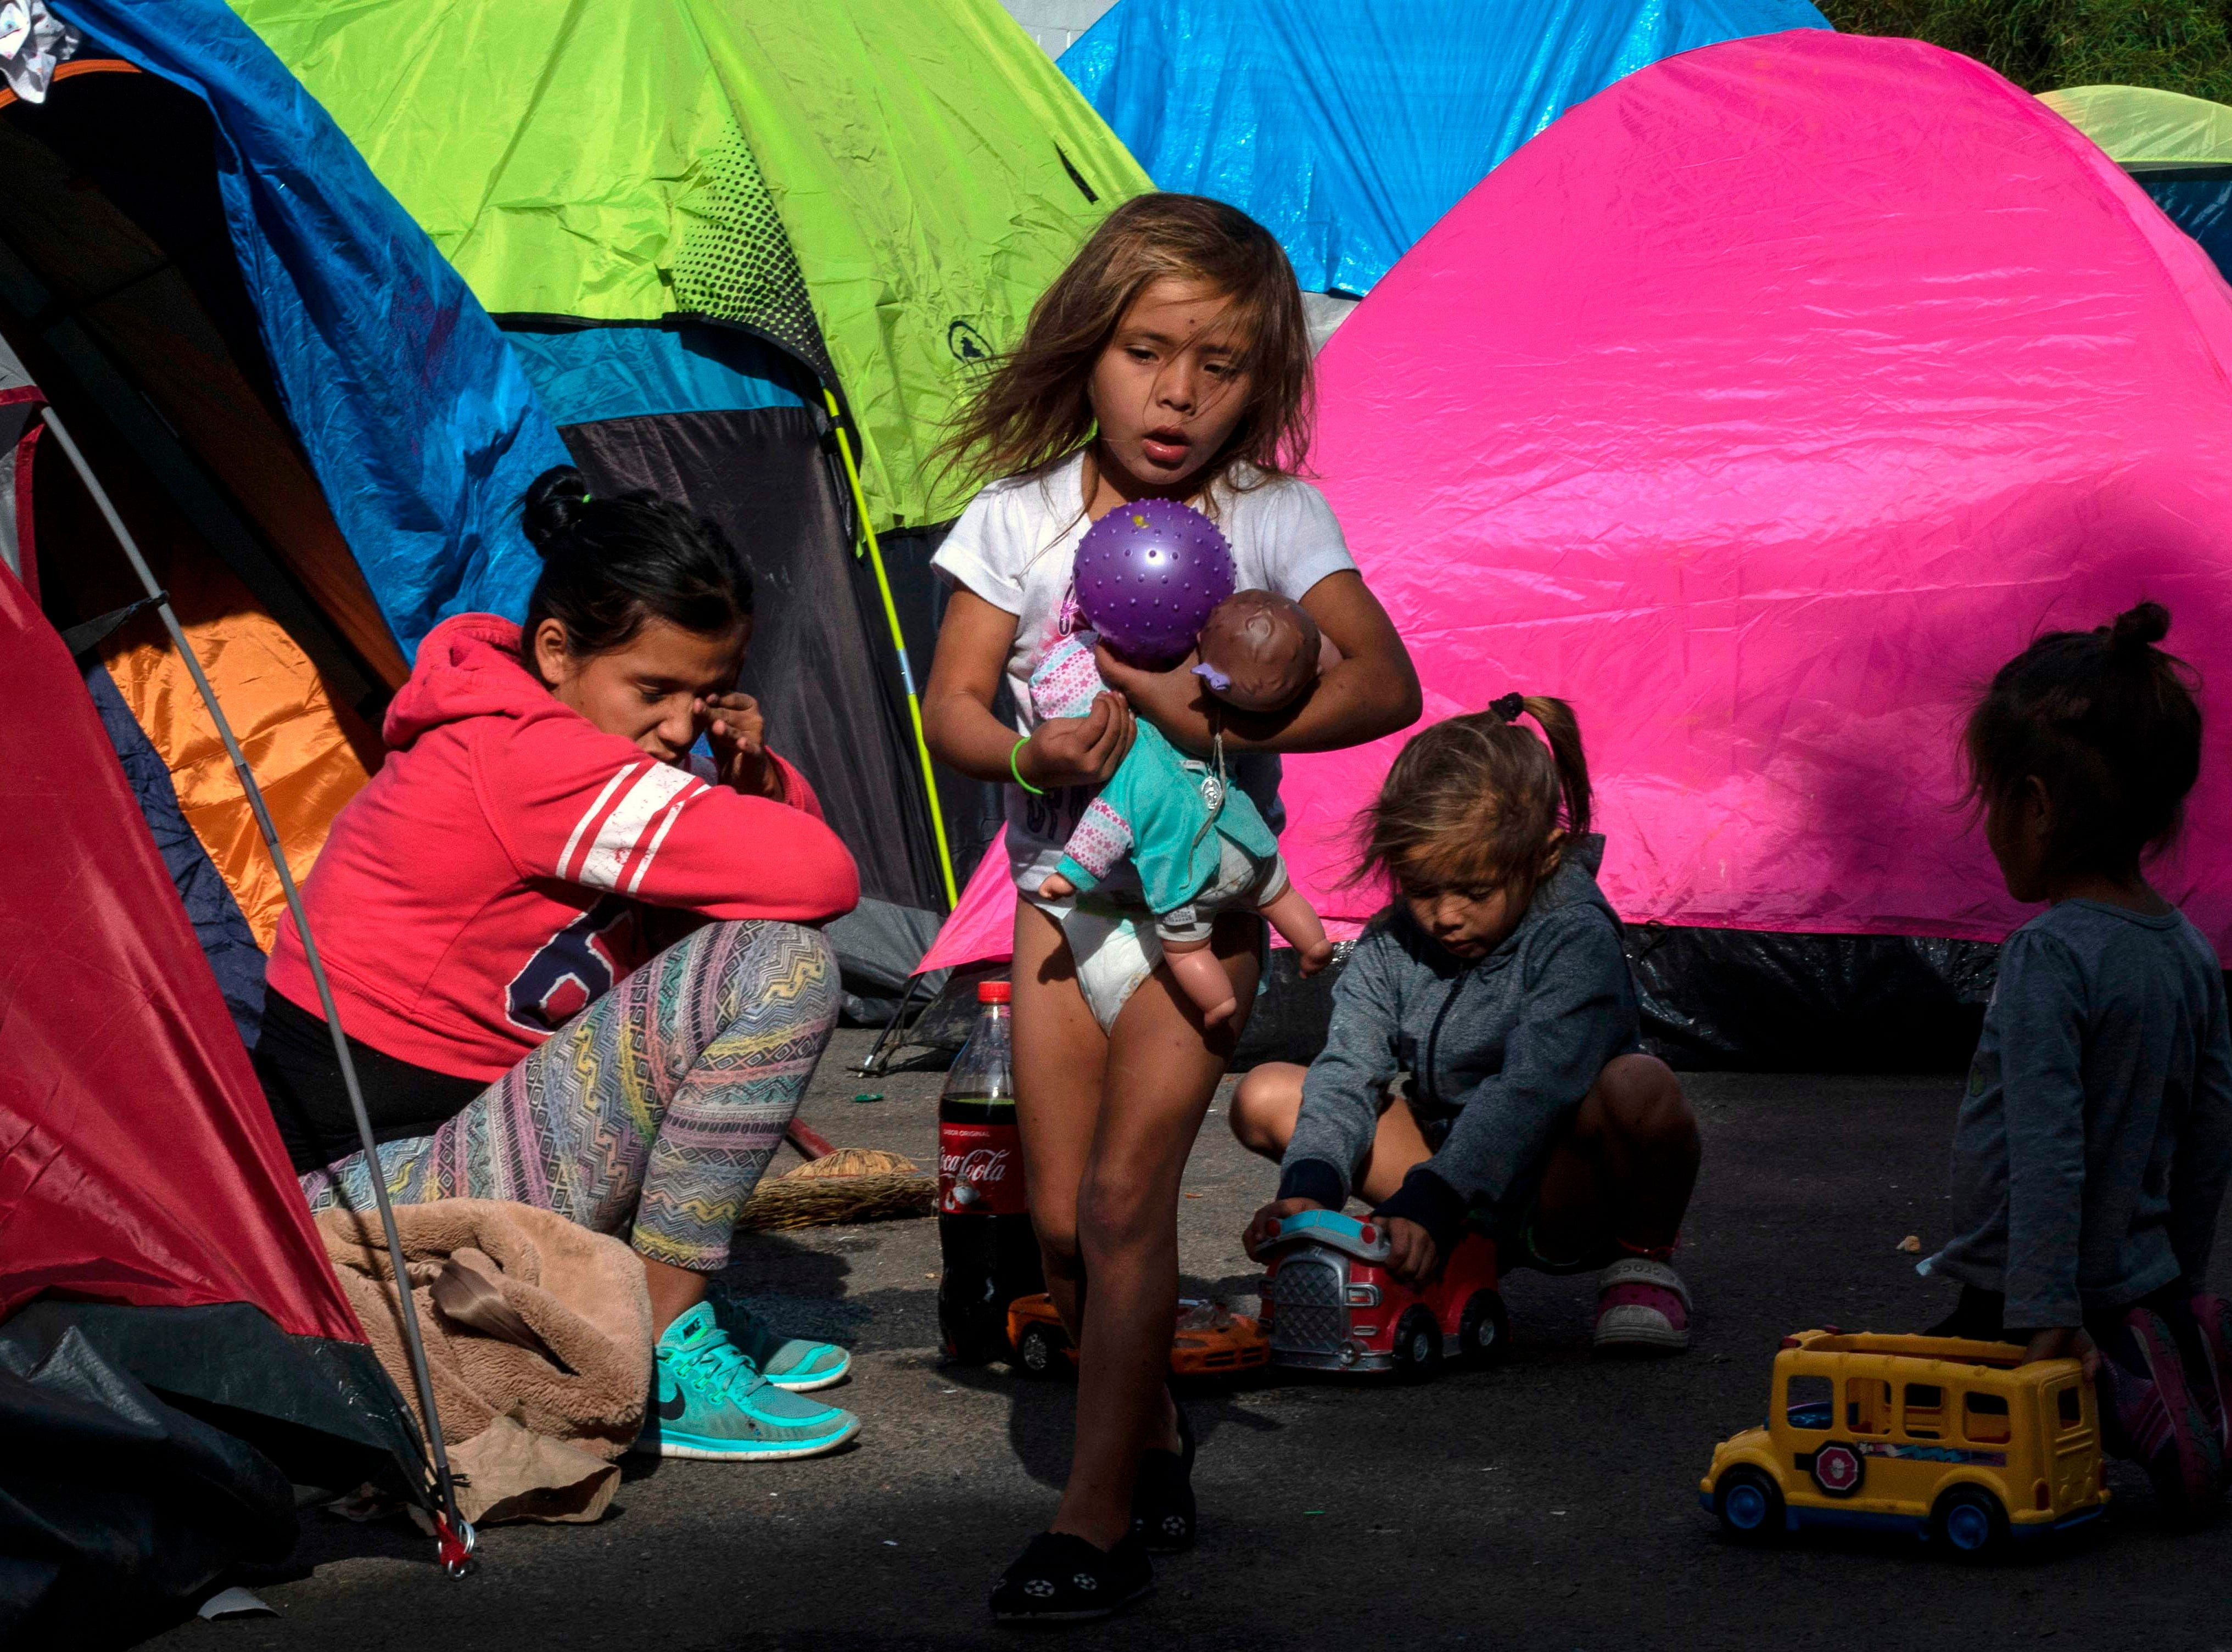 Children part of the Central American migrants caravan, play on the street, while camping near a closed temporary shelter a few meters from the US-Mexico border in Tijuana, Baja California State, Mexico, Dec. 4, 2018. Thousands of Central American migrants, mostly Hondurans, have trekked for over a month in the hopes of reaching the United States.